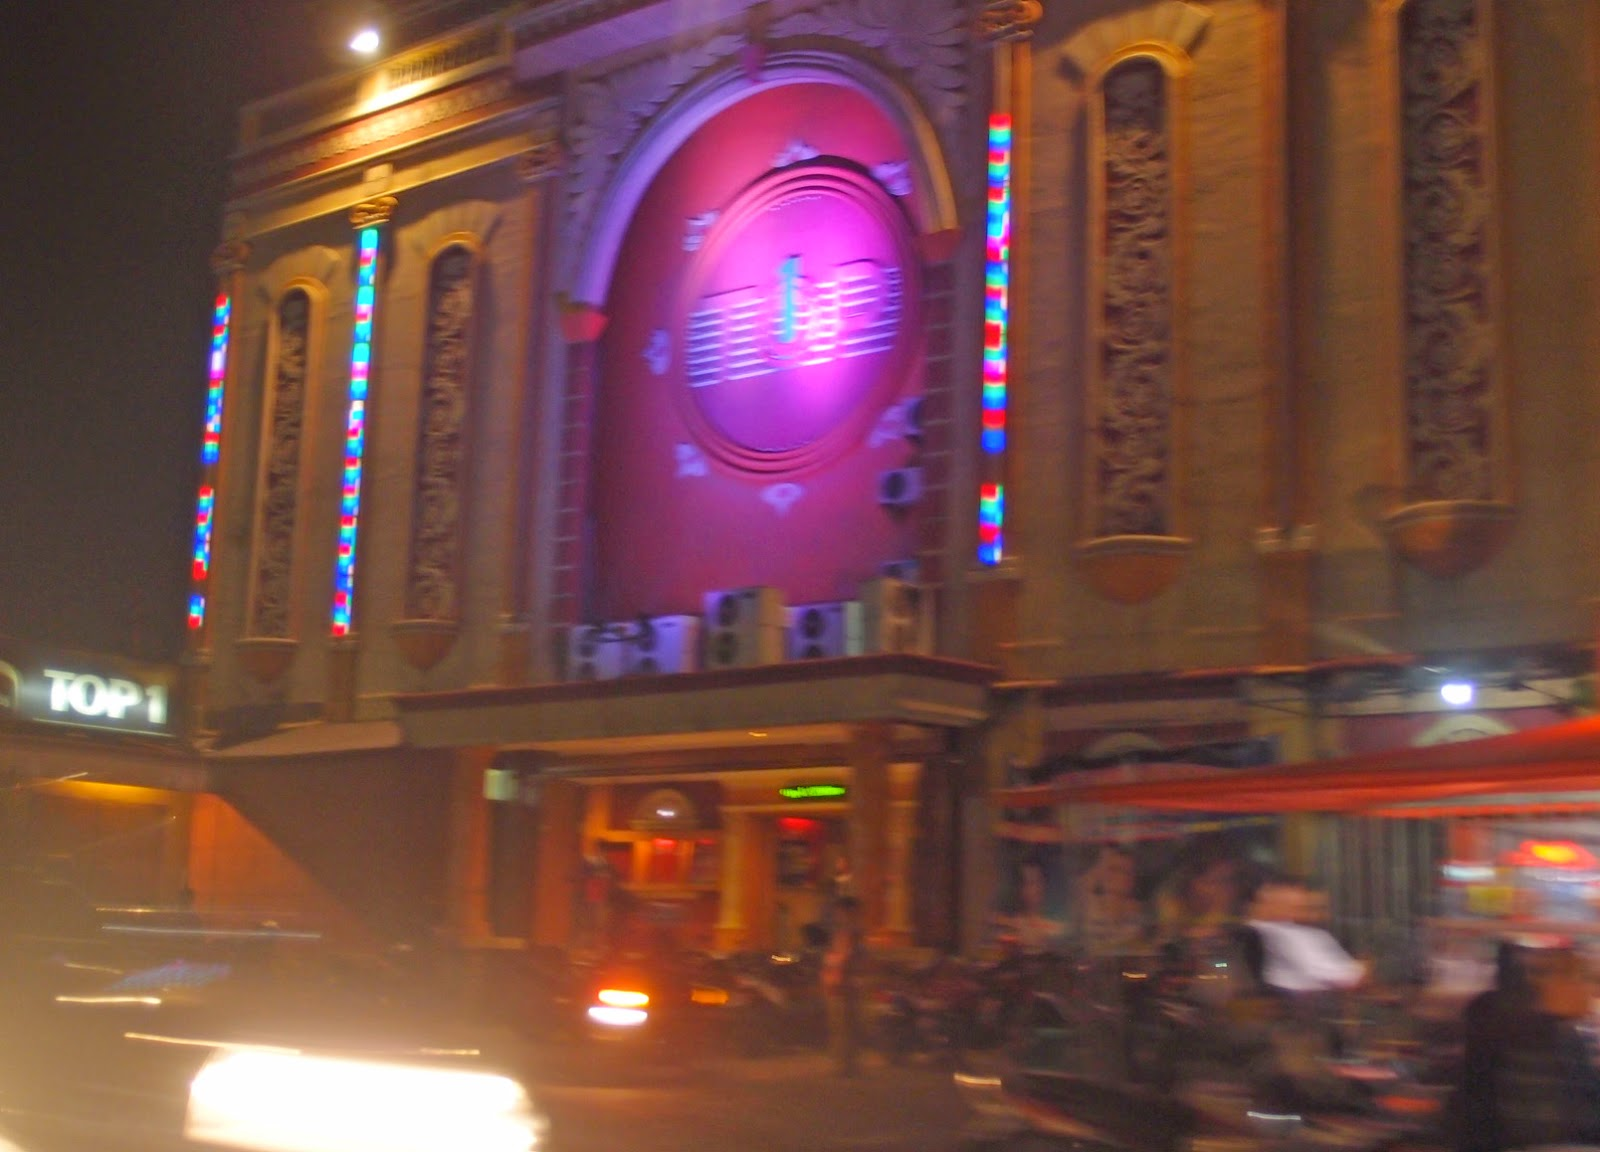 Top 1 Disco And Massage Daan Mogot Jakarta100bars Nightlife Reviews Best Nightclubs Bars And Spas In Asia